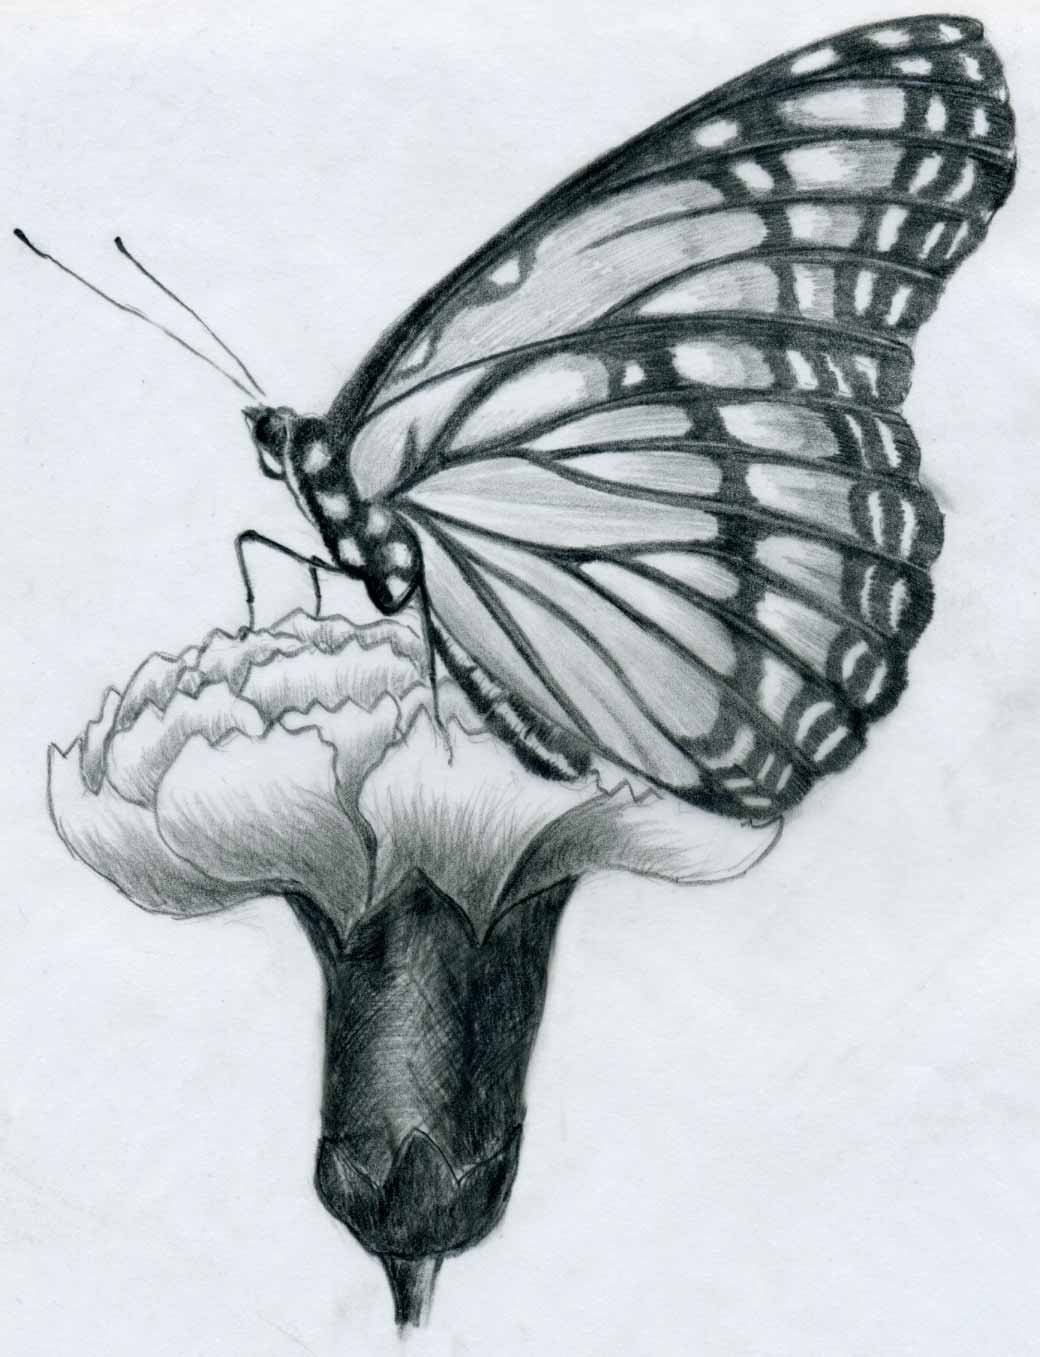 Enjoy butterfly pencil drawings